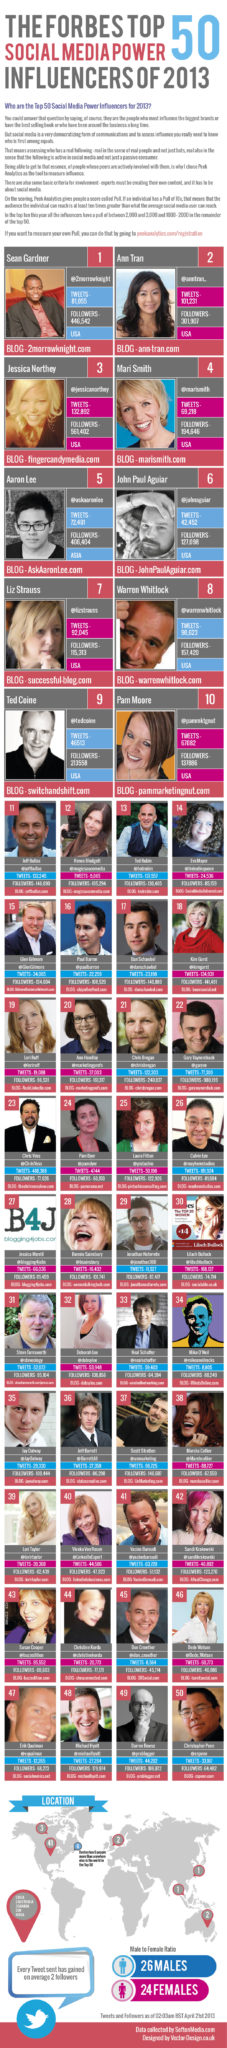 Forbes Top 50 Social Media Power Influencers of 2013 [INFOGRAPHIC]